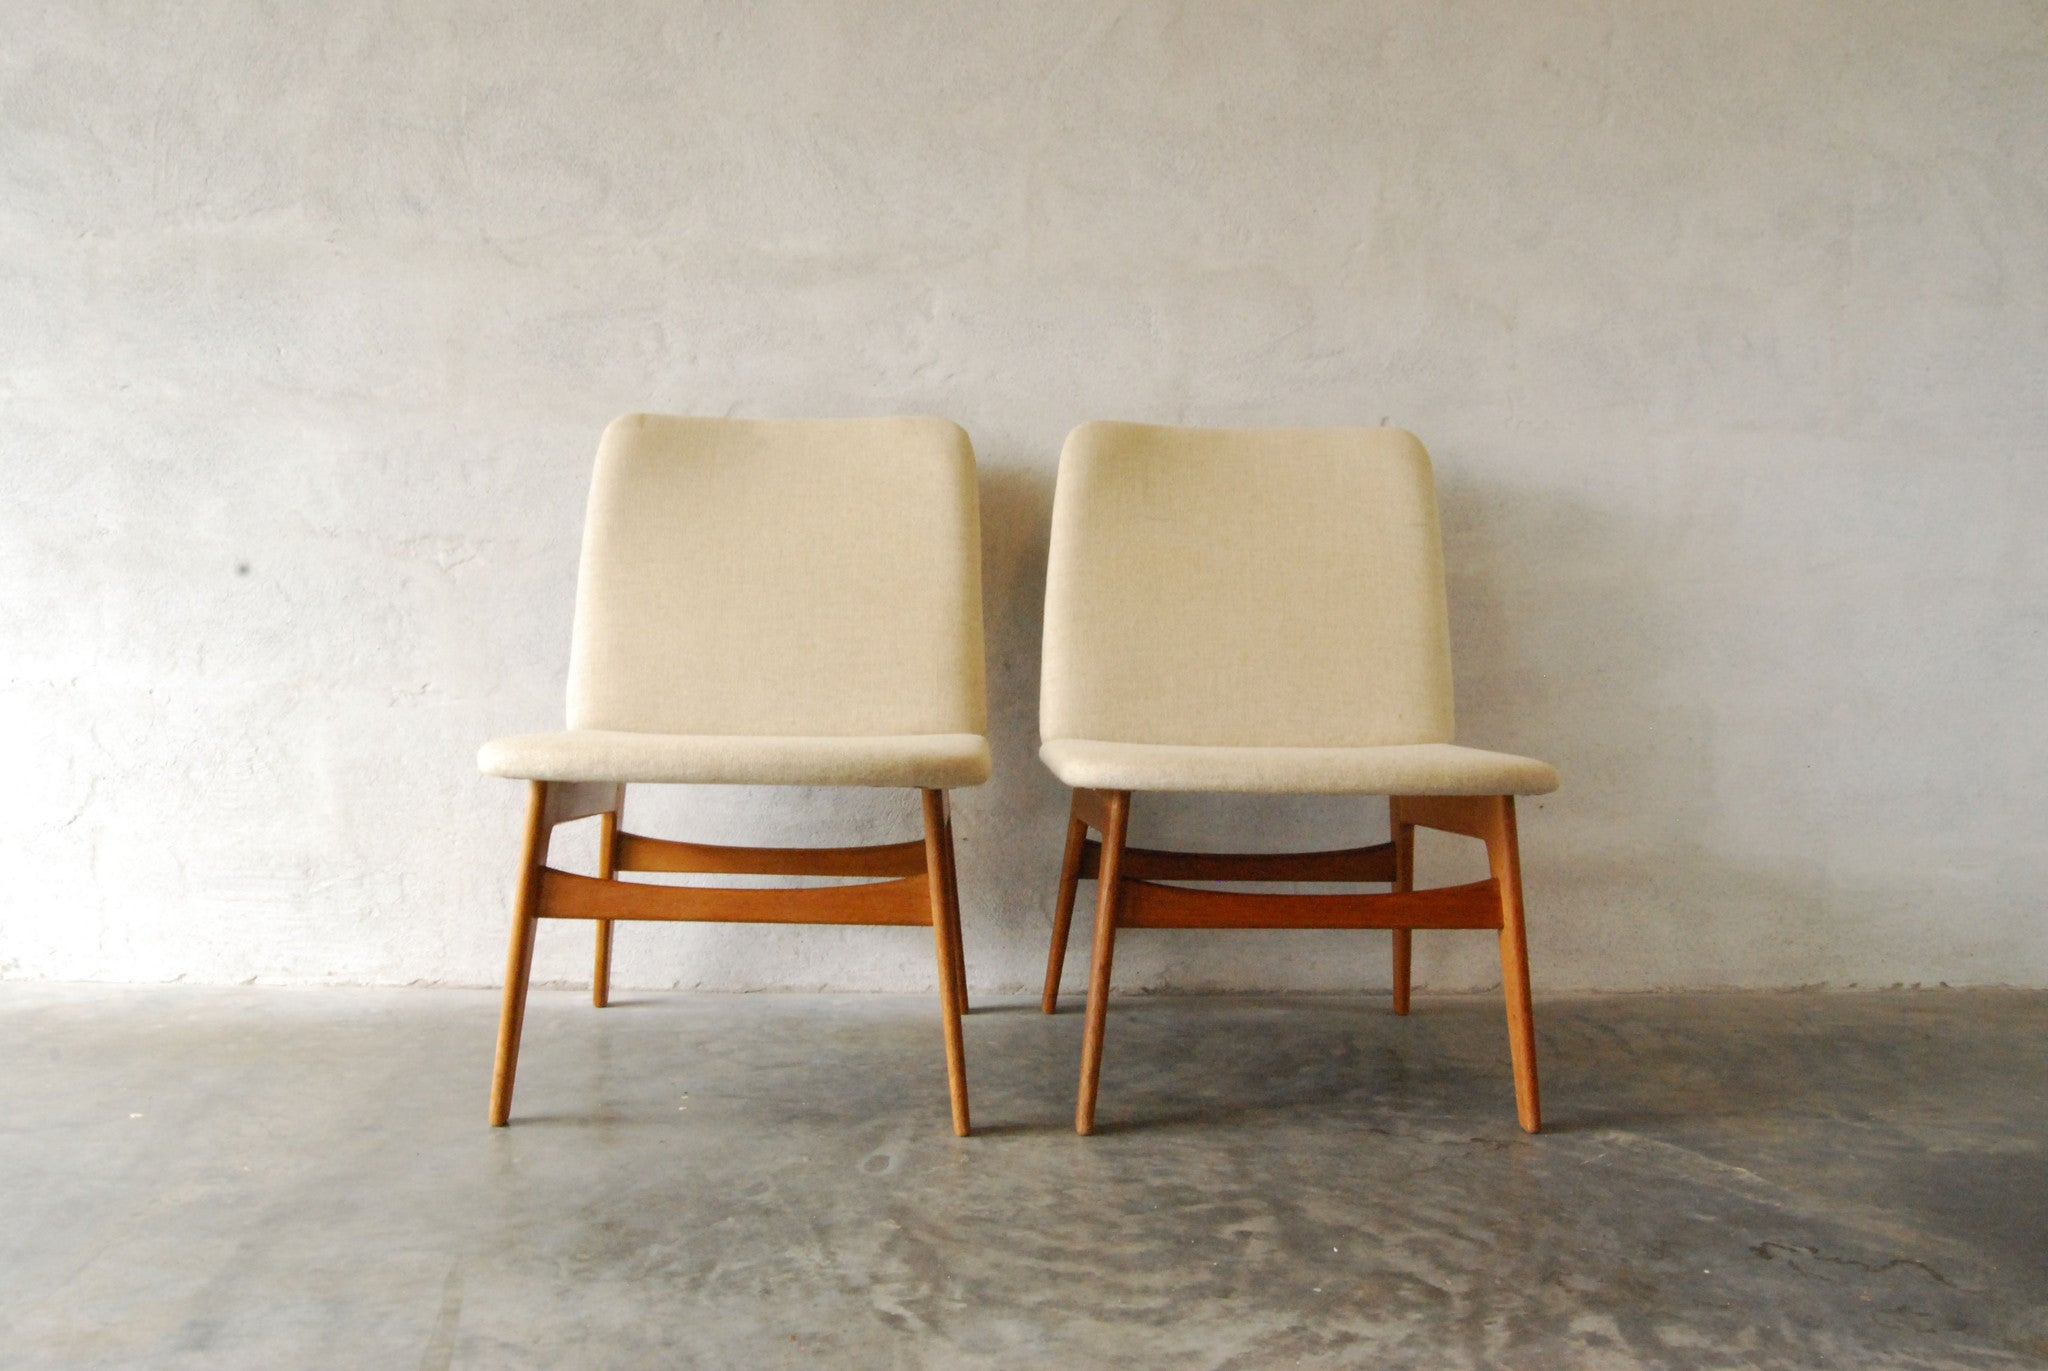 Chase & Sorensen Pair of occasional chairs by Børge Mogensen